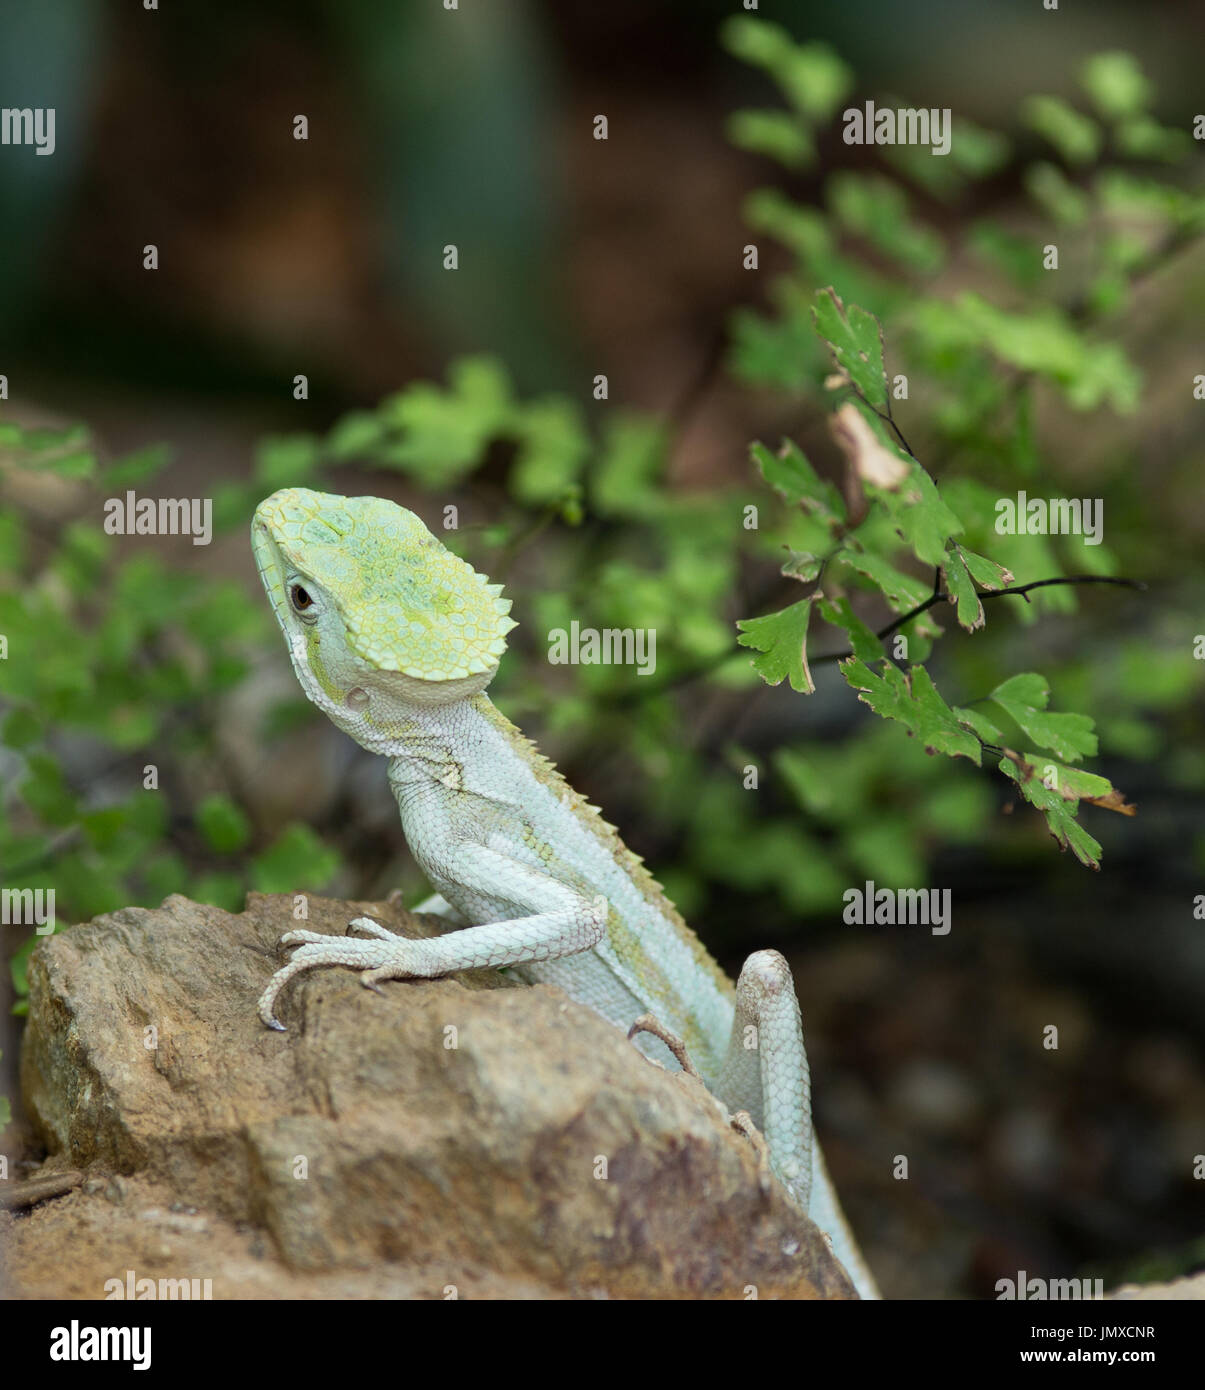 Portrait of serrated basilisk lizard standing on rock with leaves in background - Stock Image